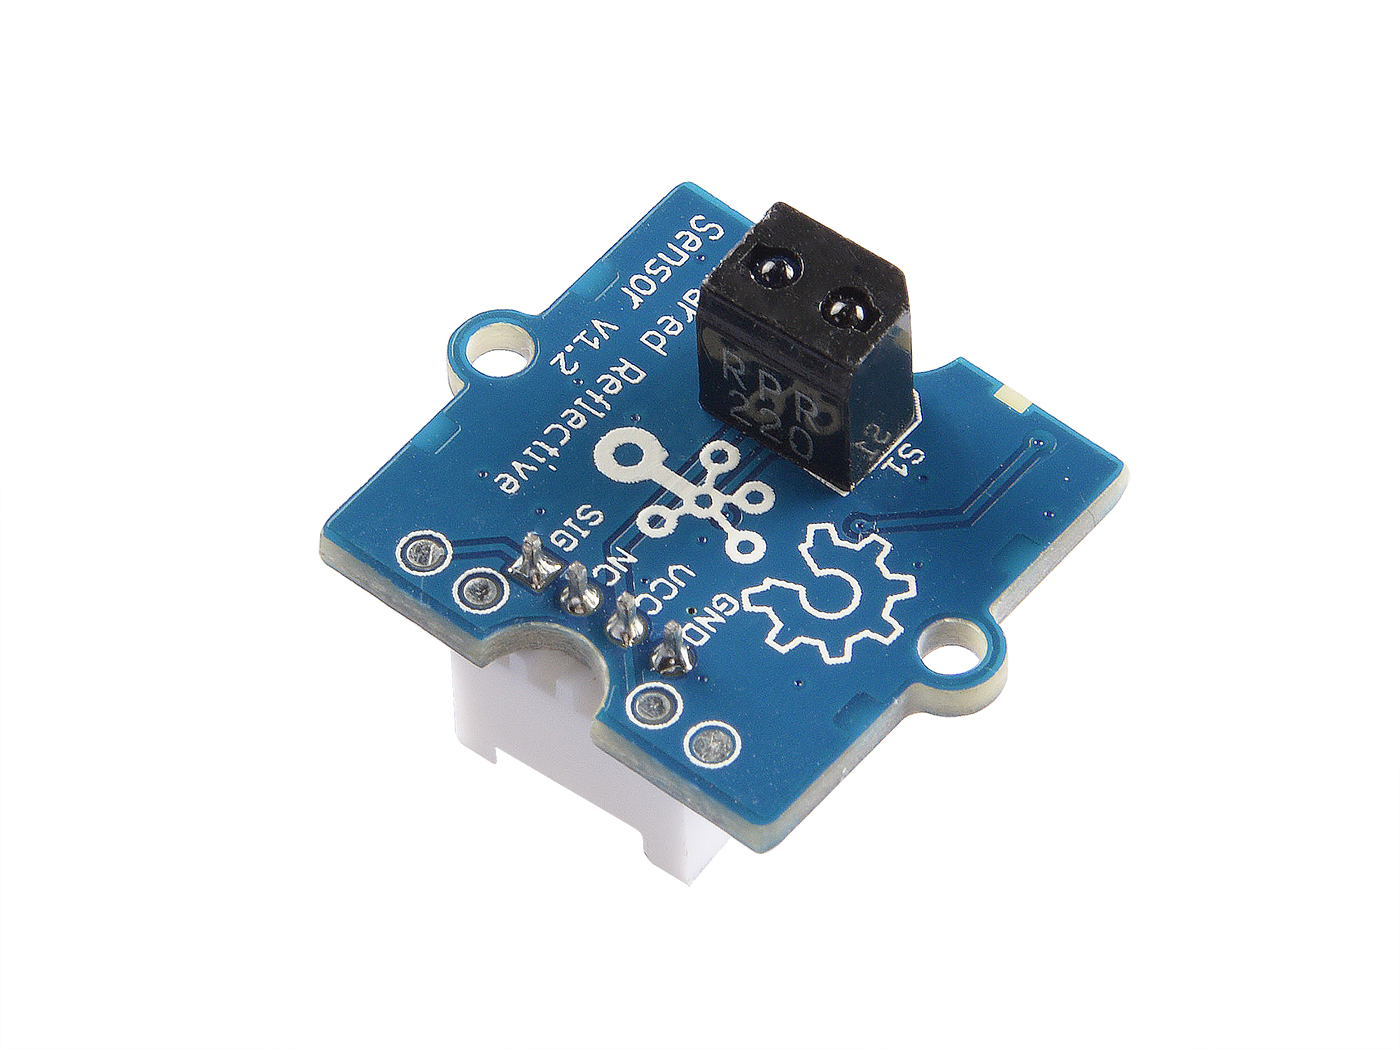 Grove Infrared Emitter Communication Seeed Studio Remote Control Transmitter Integrated Circuit Reflective Sensor V12